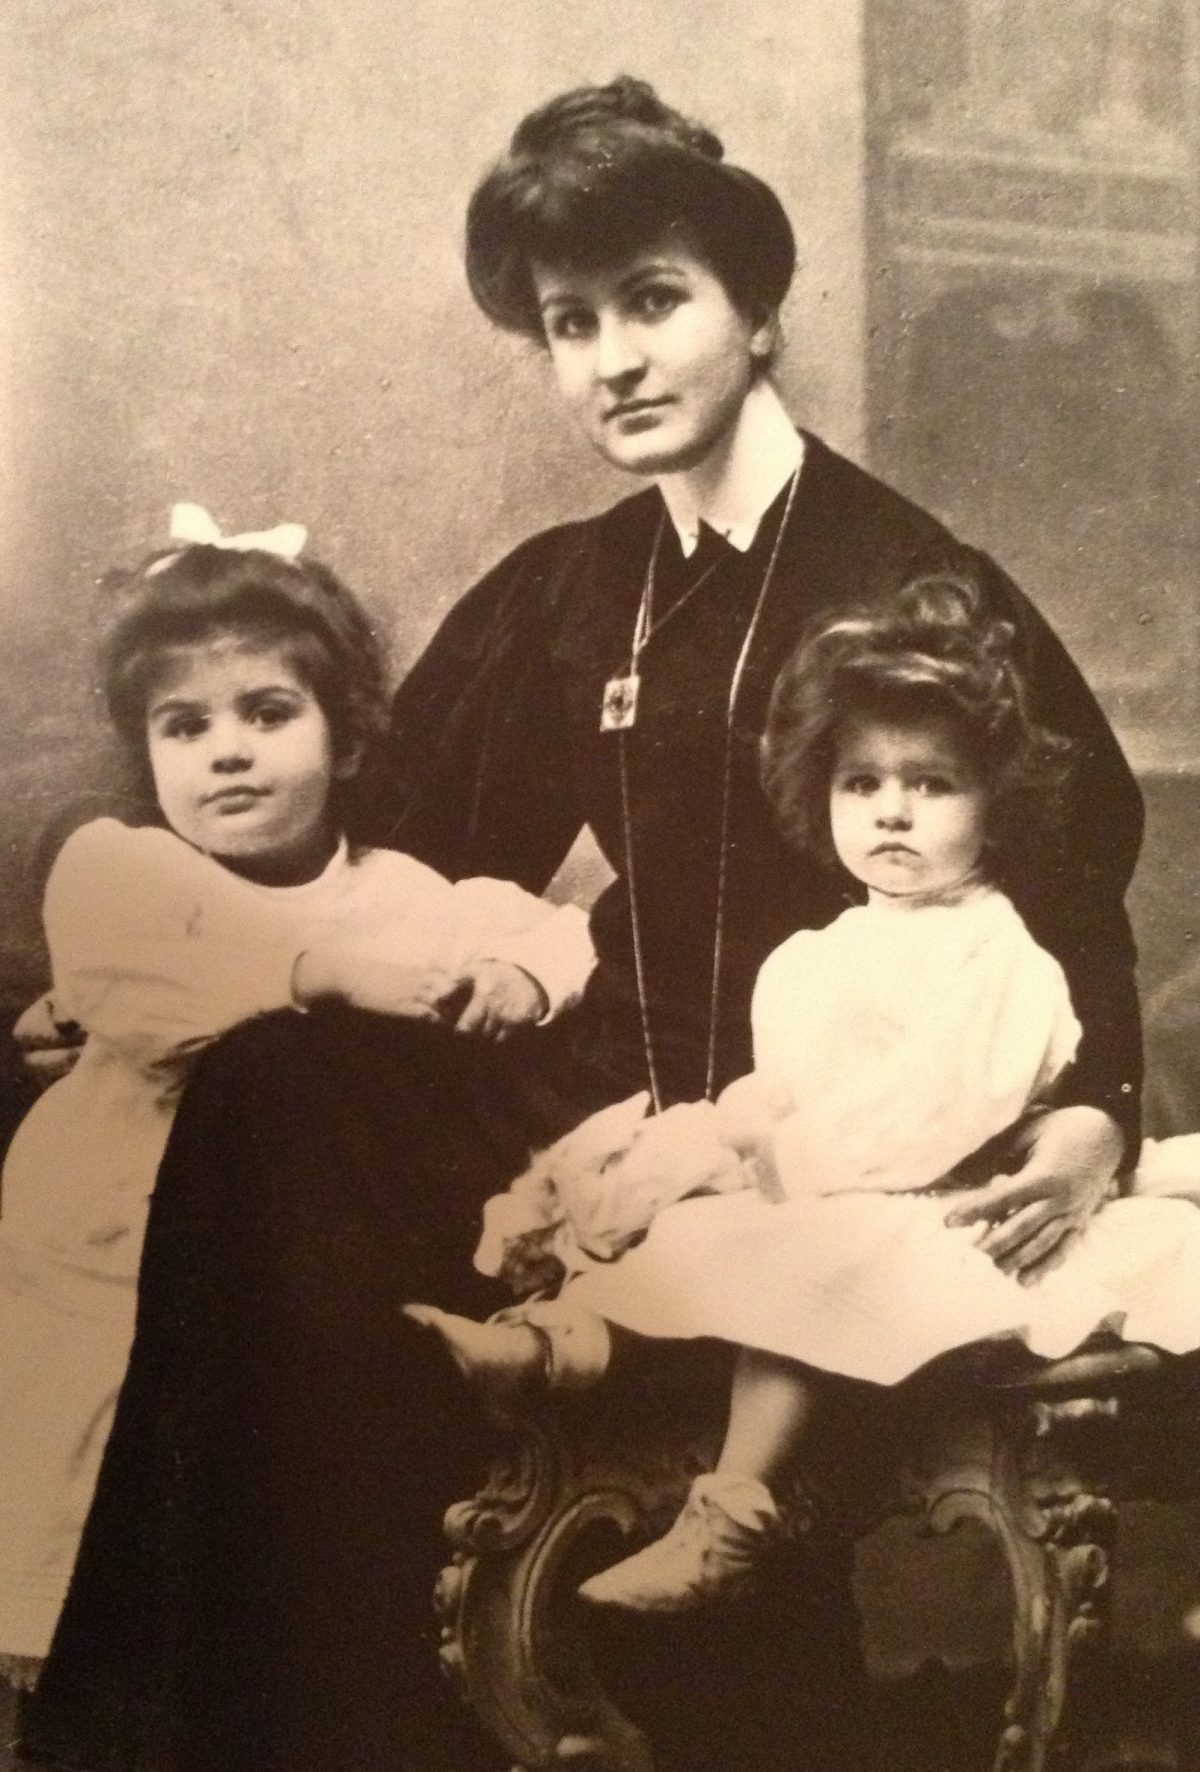 Alma Mahler with her daughters Maria (at left) and Anna (at right), cabinet card photo circa 1906